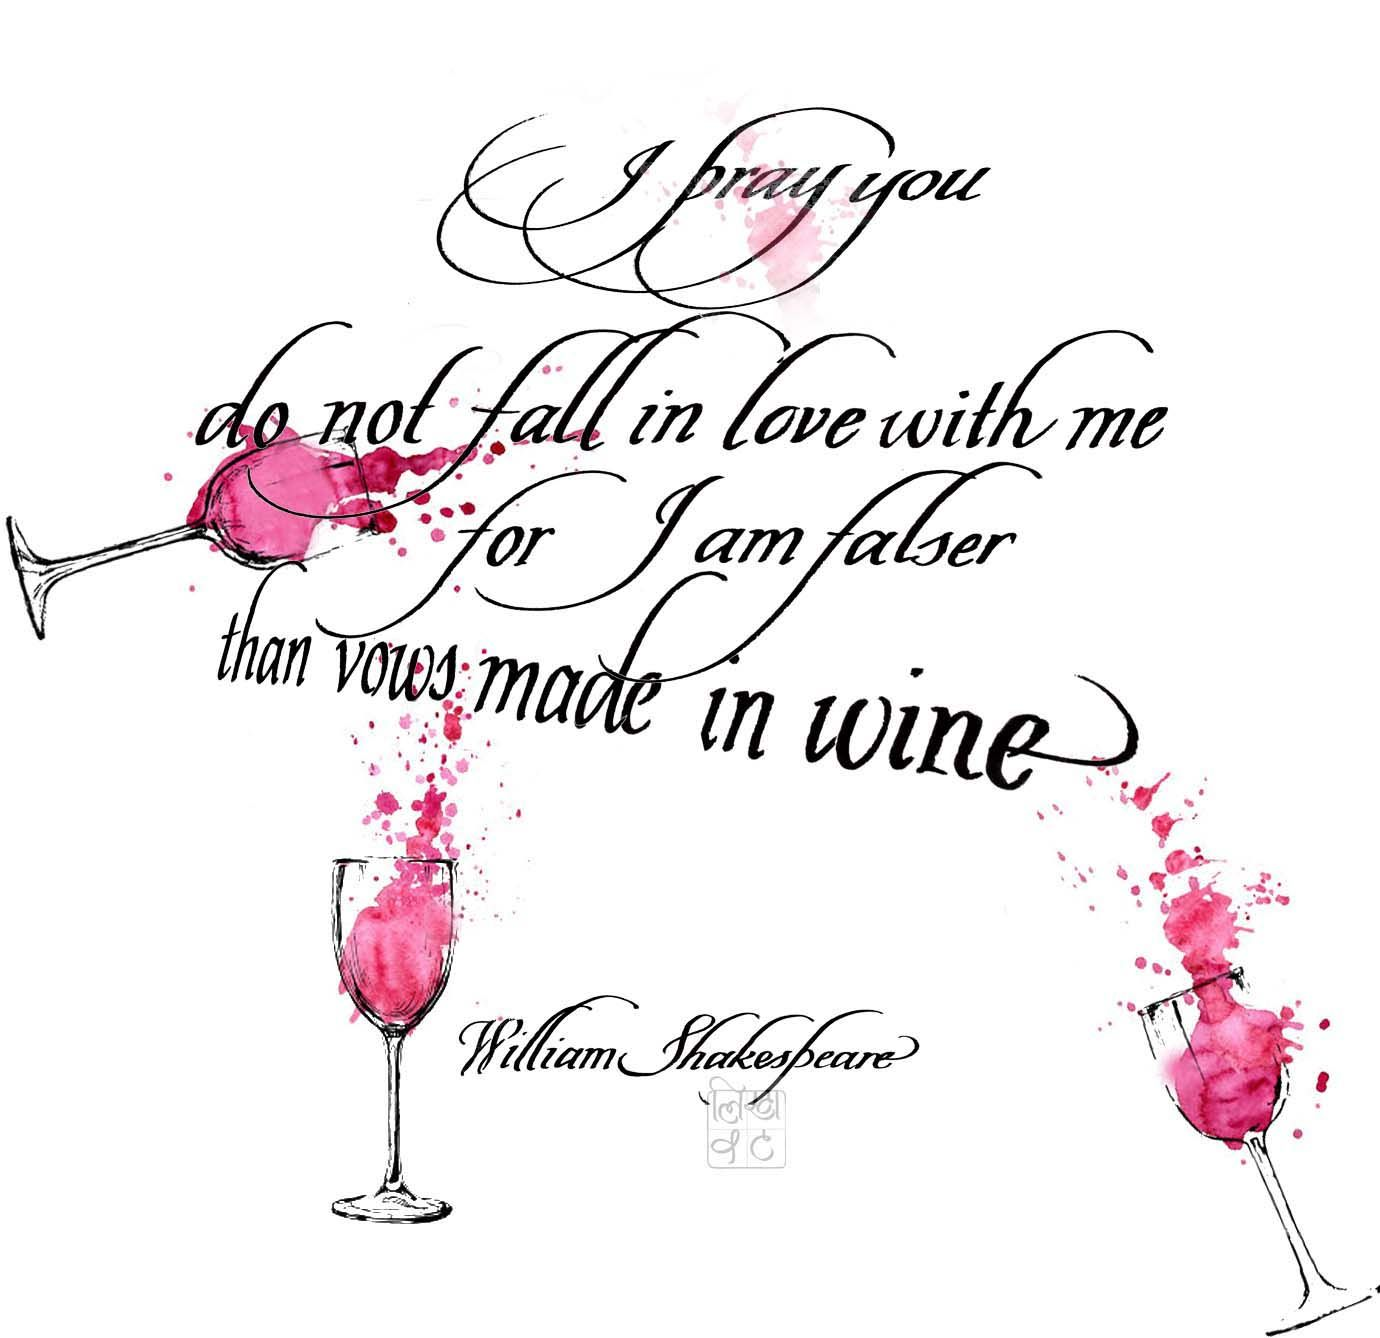 #Shakespeare #williamshakespeare #Wine #Calligraphy #vows #pray #love #drink #writings